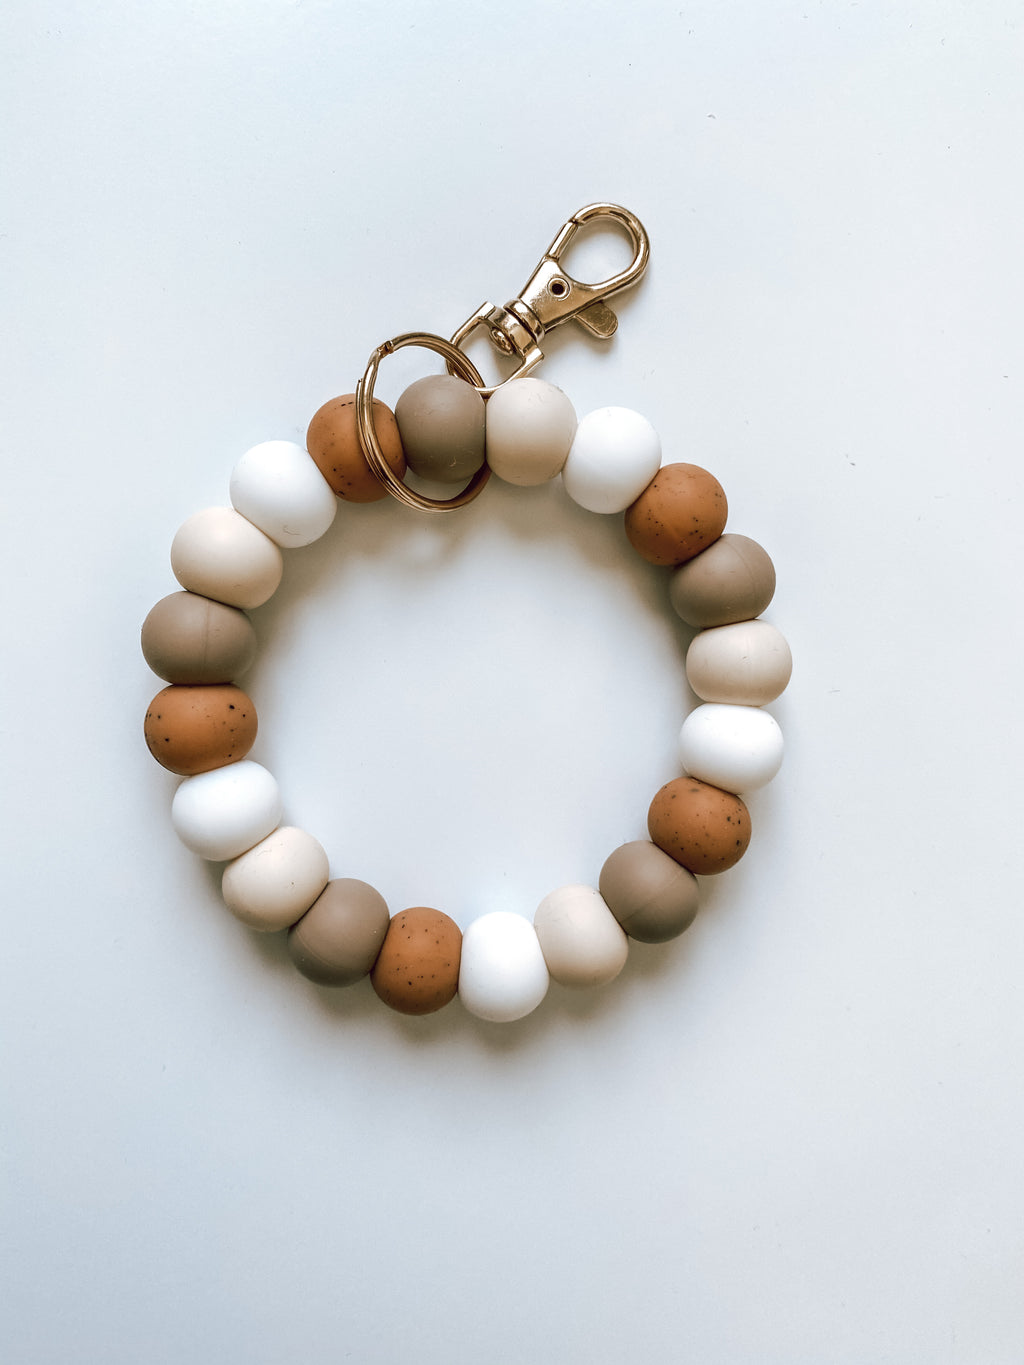 sahara collection // bracelet keychain